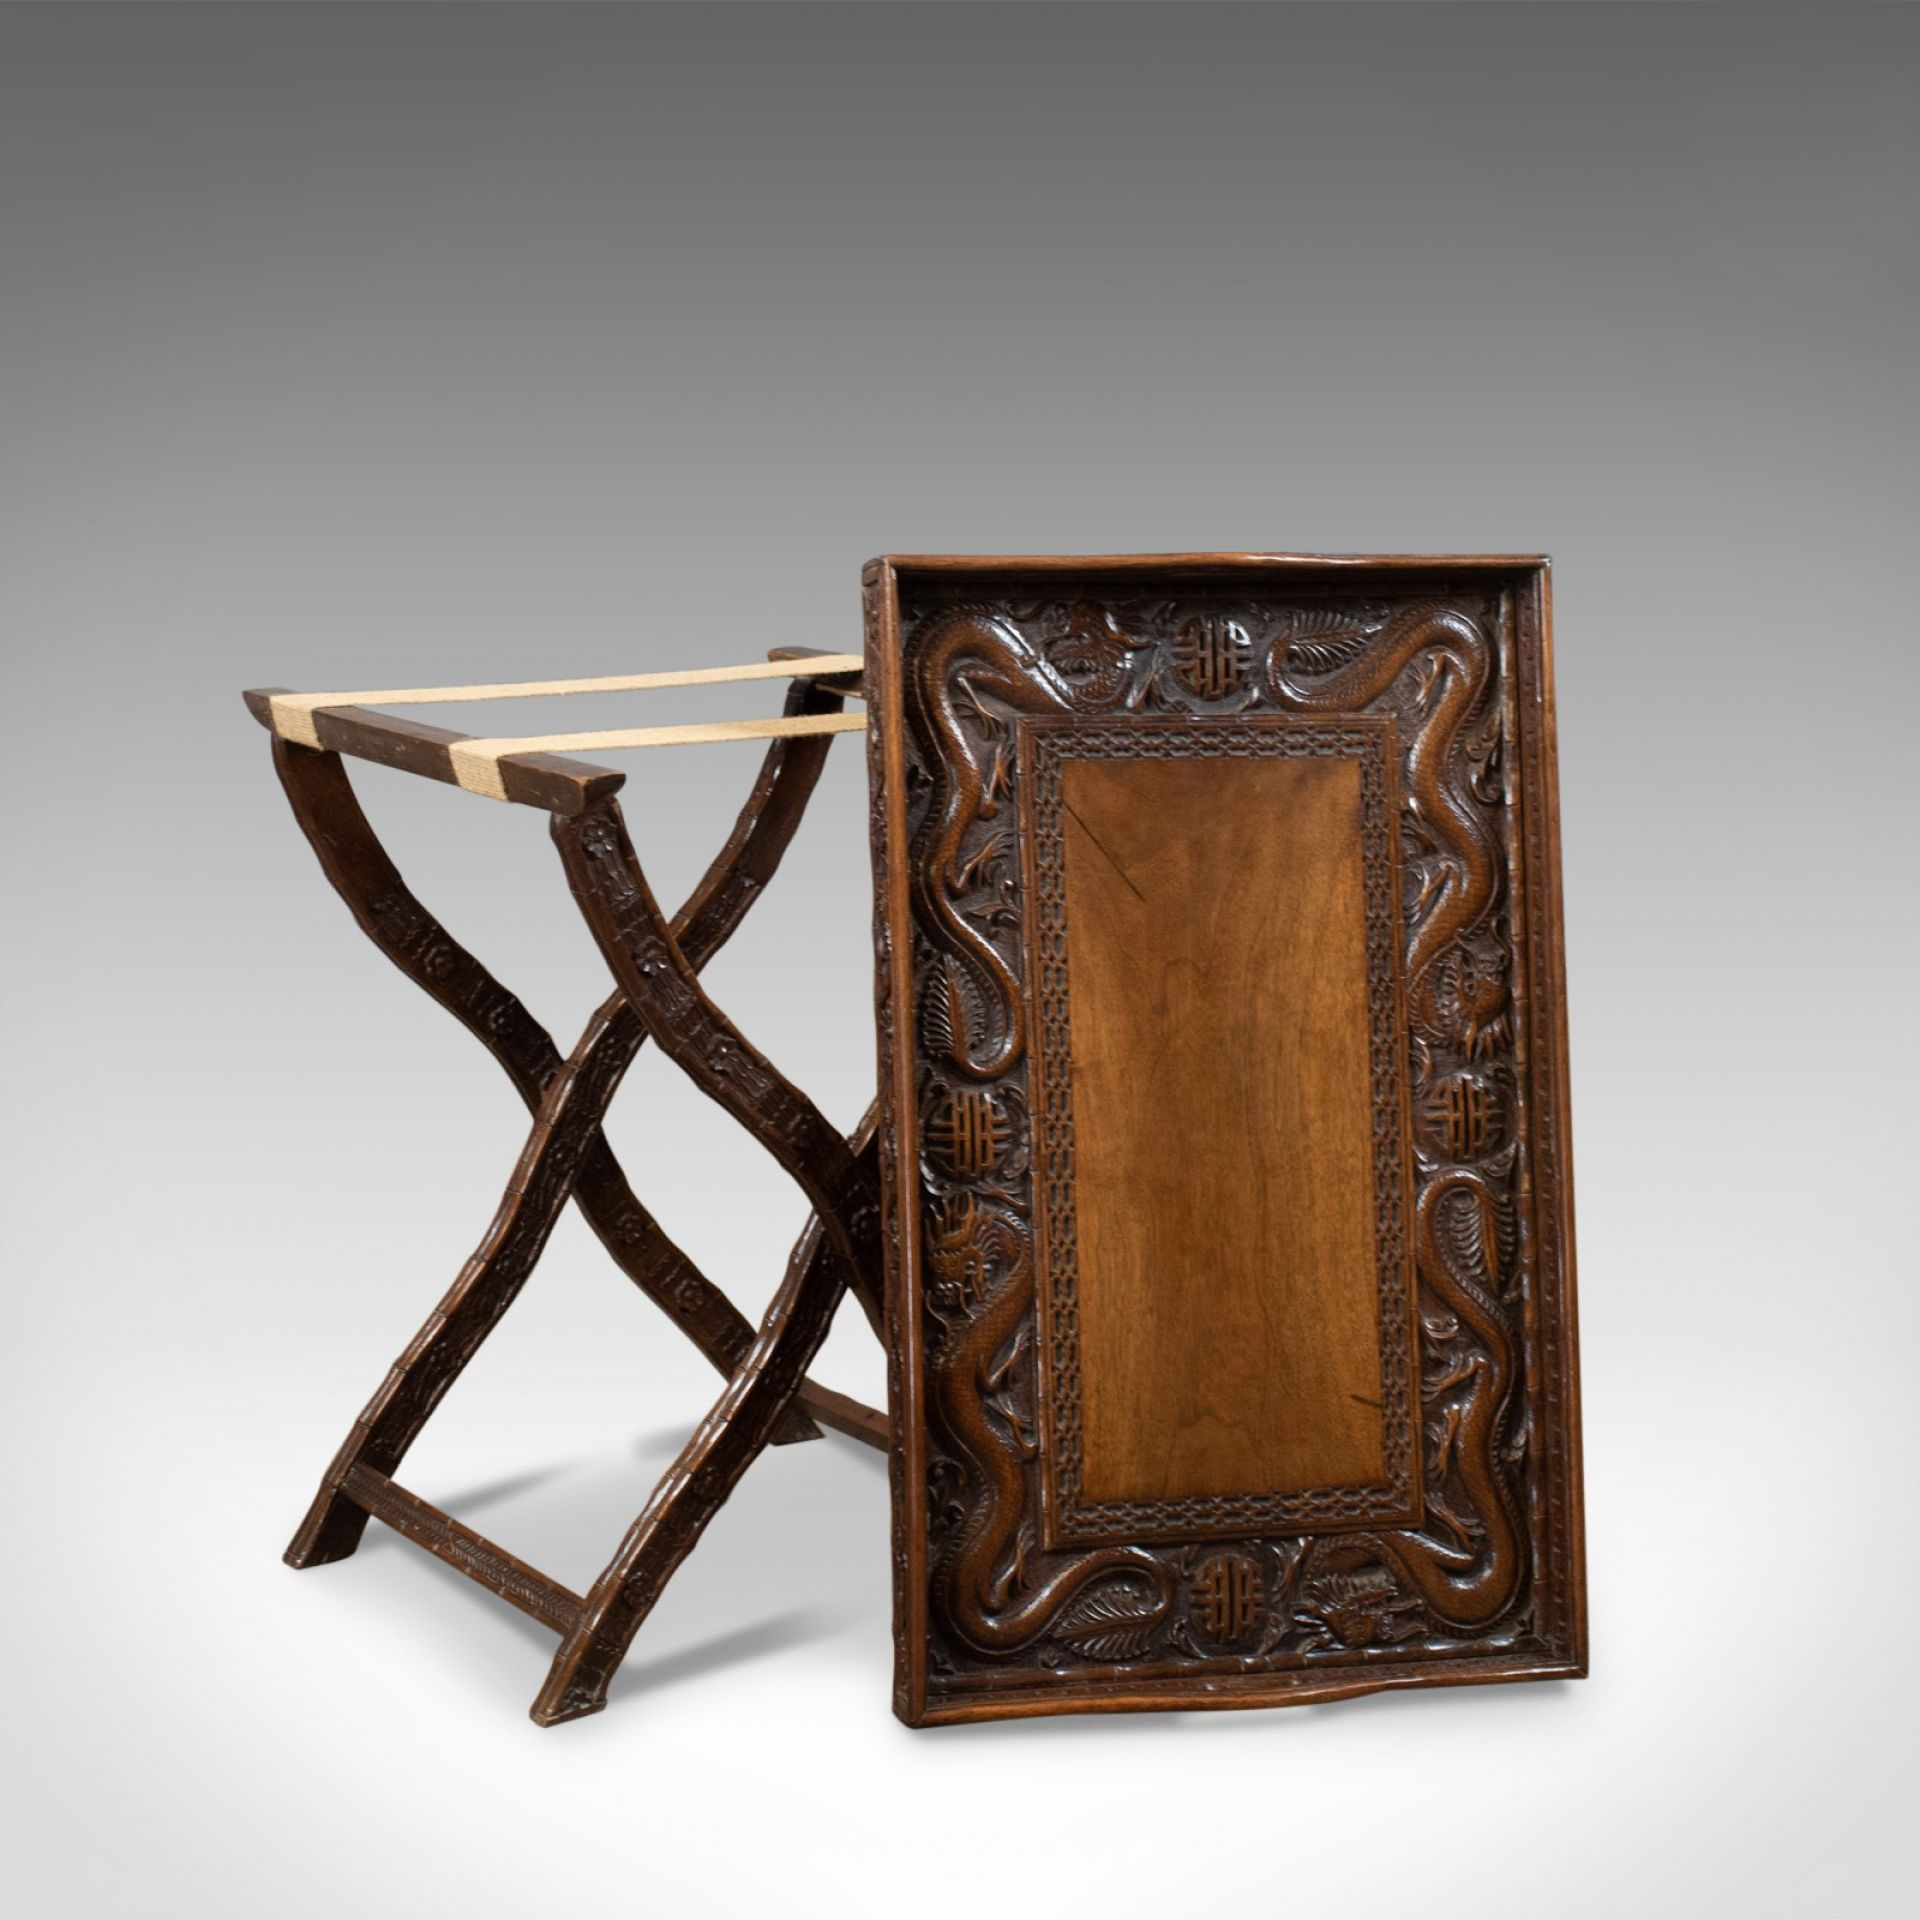 Antique Butler's Tray Table, Carved, Oriental Teak, Folding Stand, Circa 1900